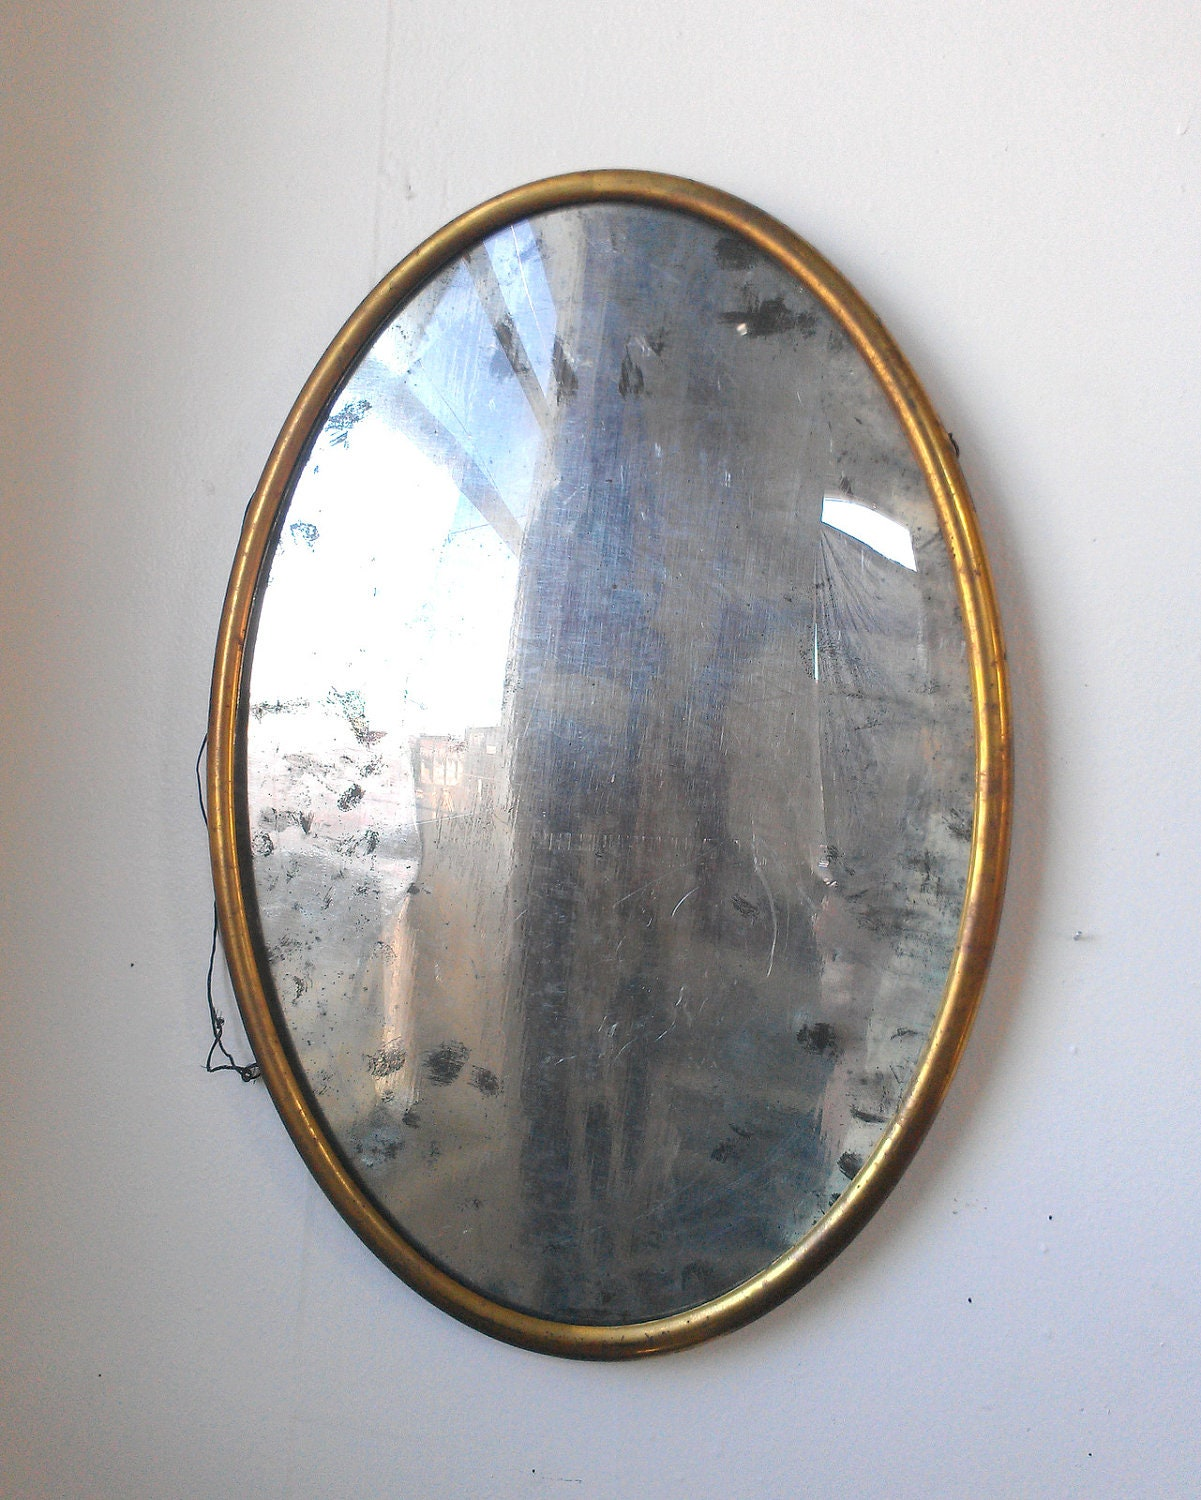 Large Antique Oval Frame With Convex Glass 20 By 14 Inches